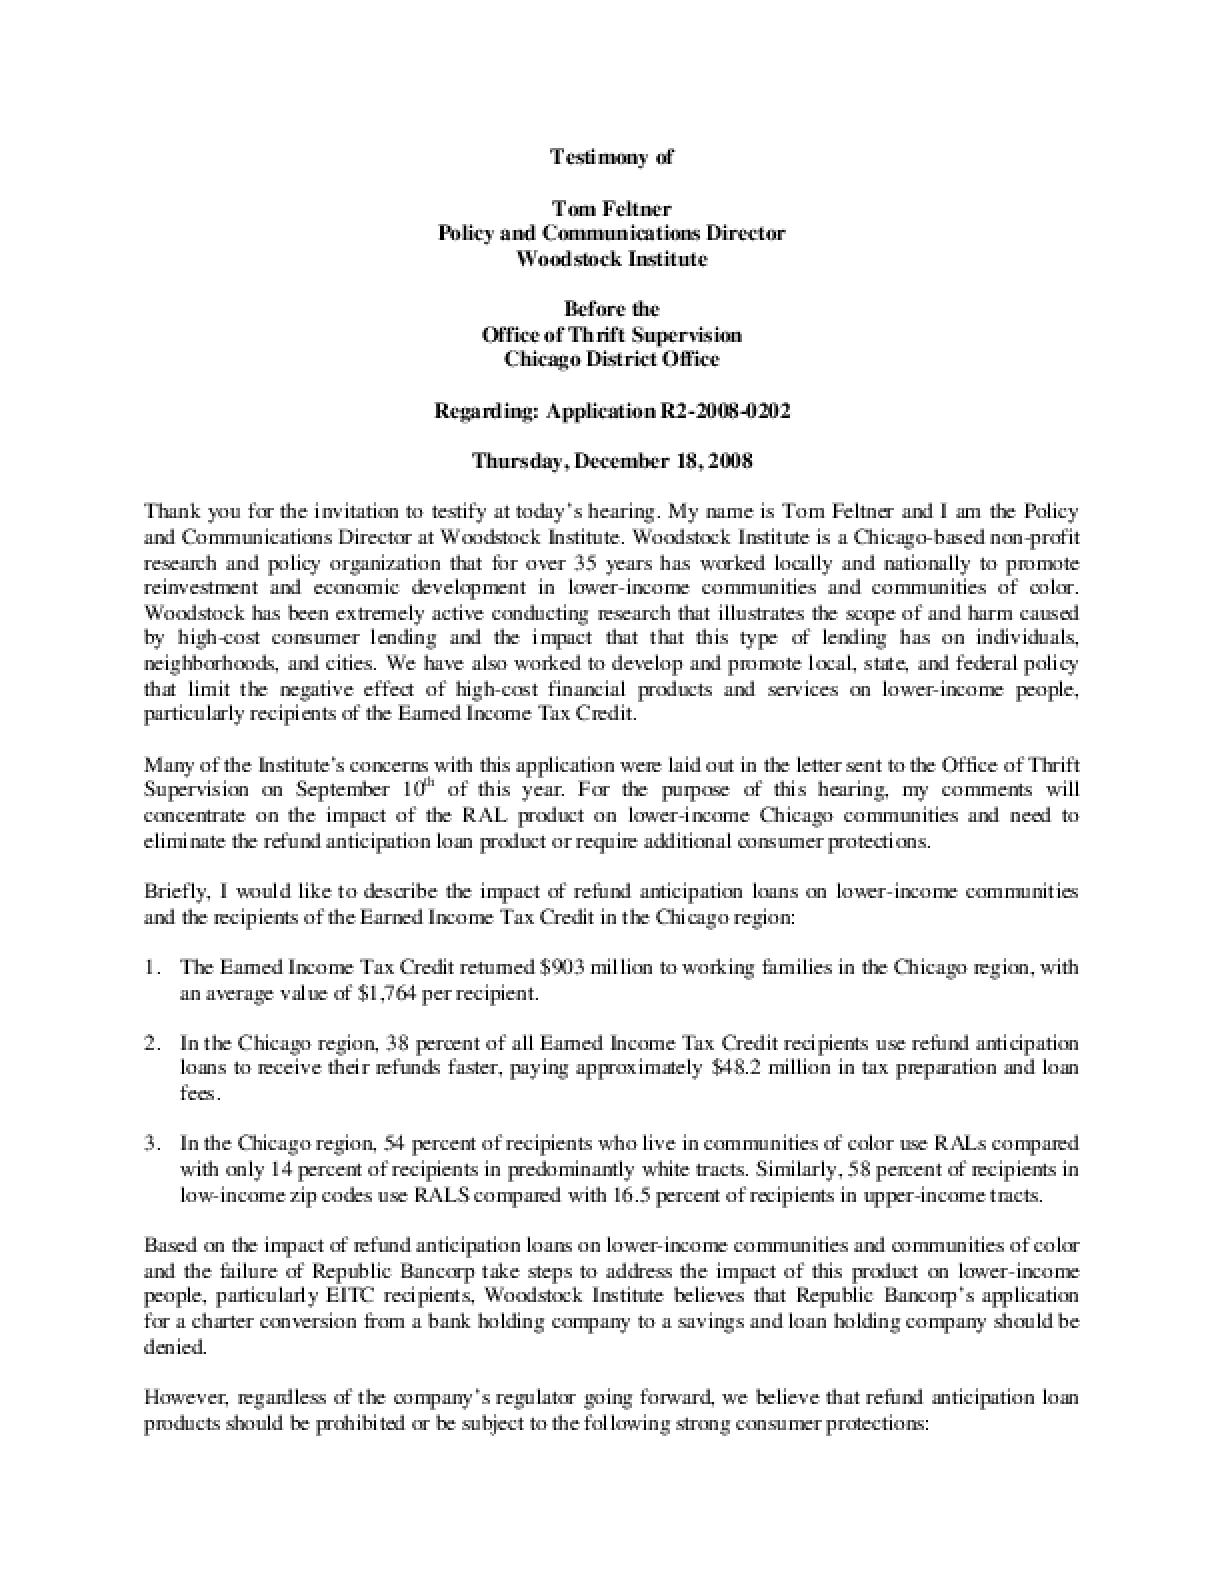 Testimony of Tom Feltner before the Office of Thrift Supervision on the tax lending activity of Republic Bank and Trust